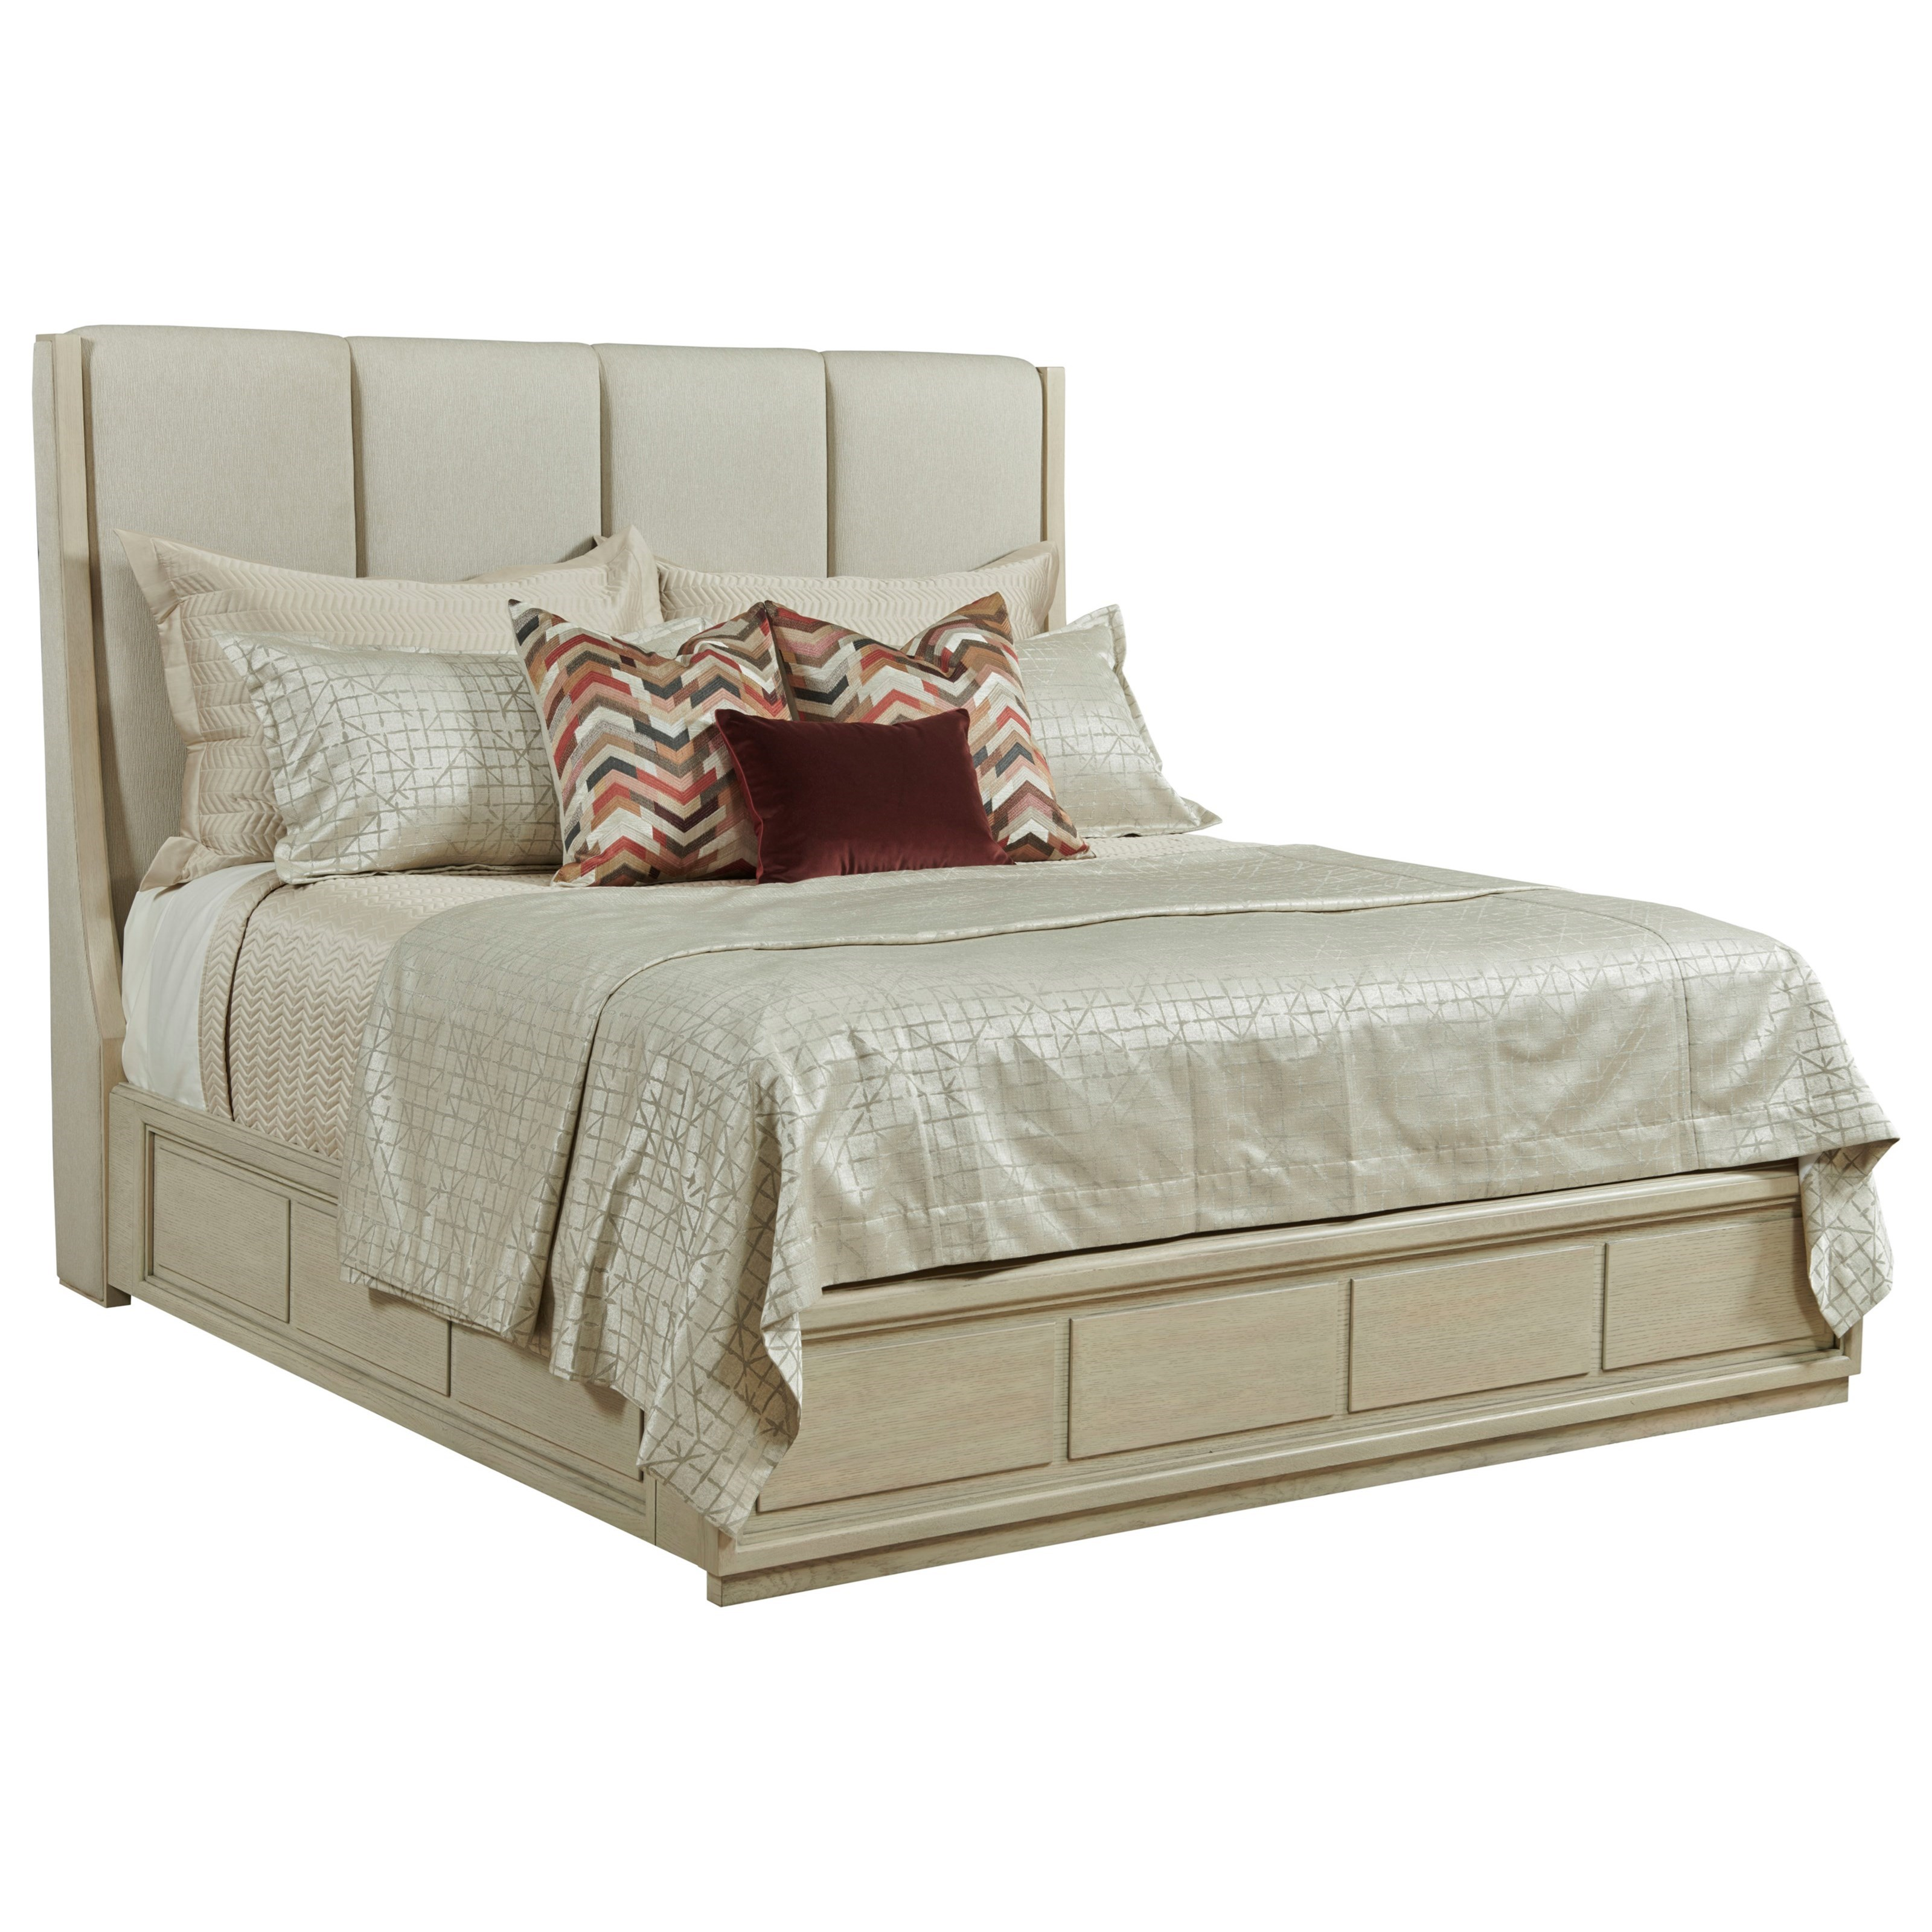 Lenox Queen Upholstered Bed by American Drew at Johnny Janosik